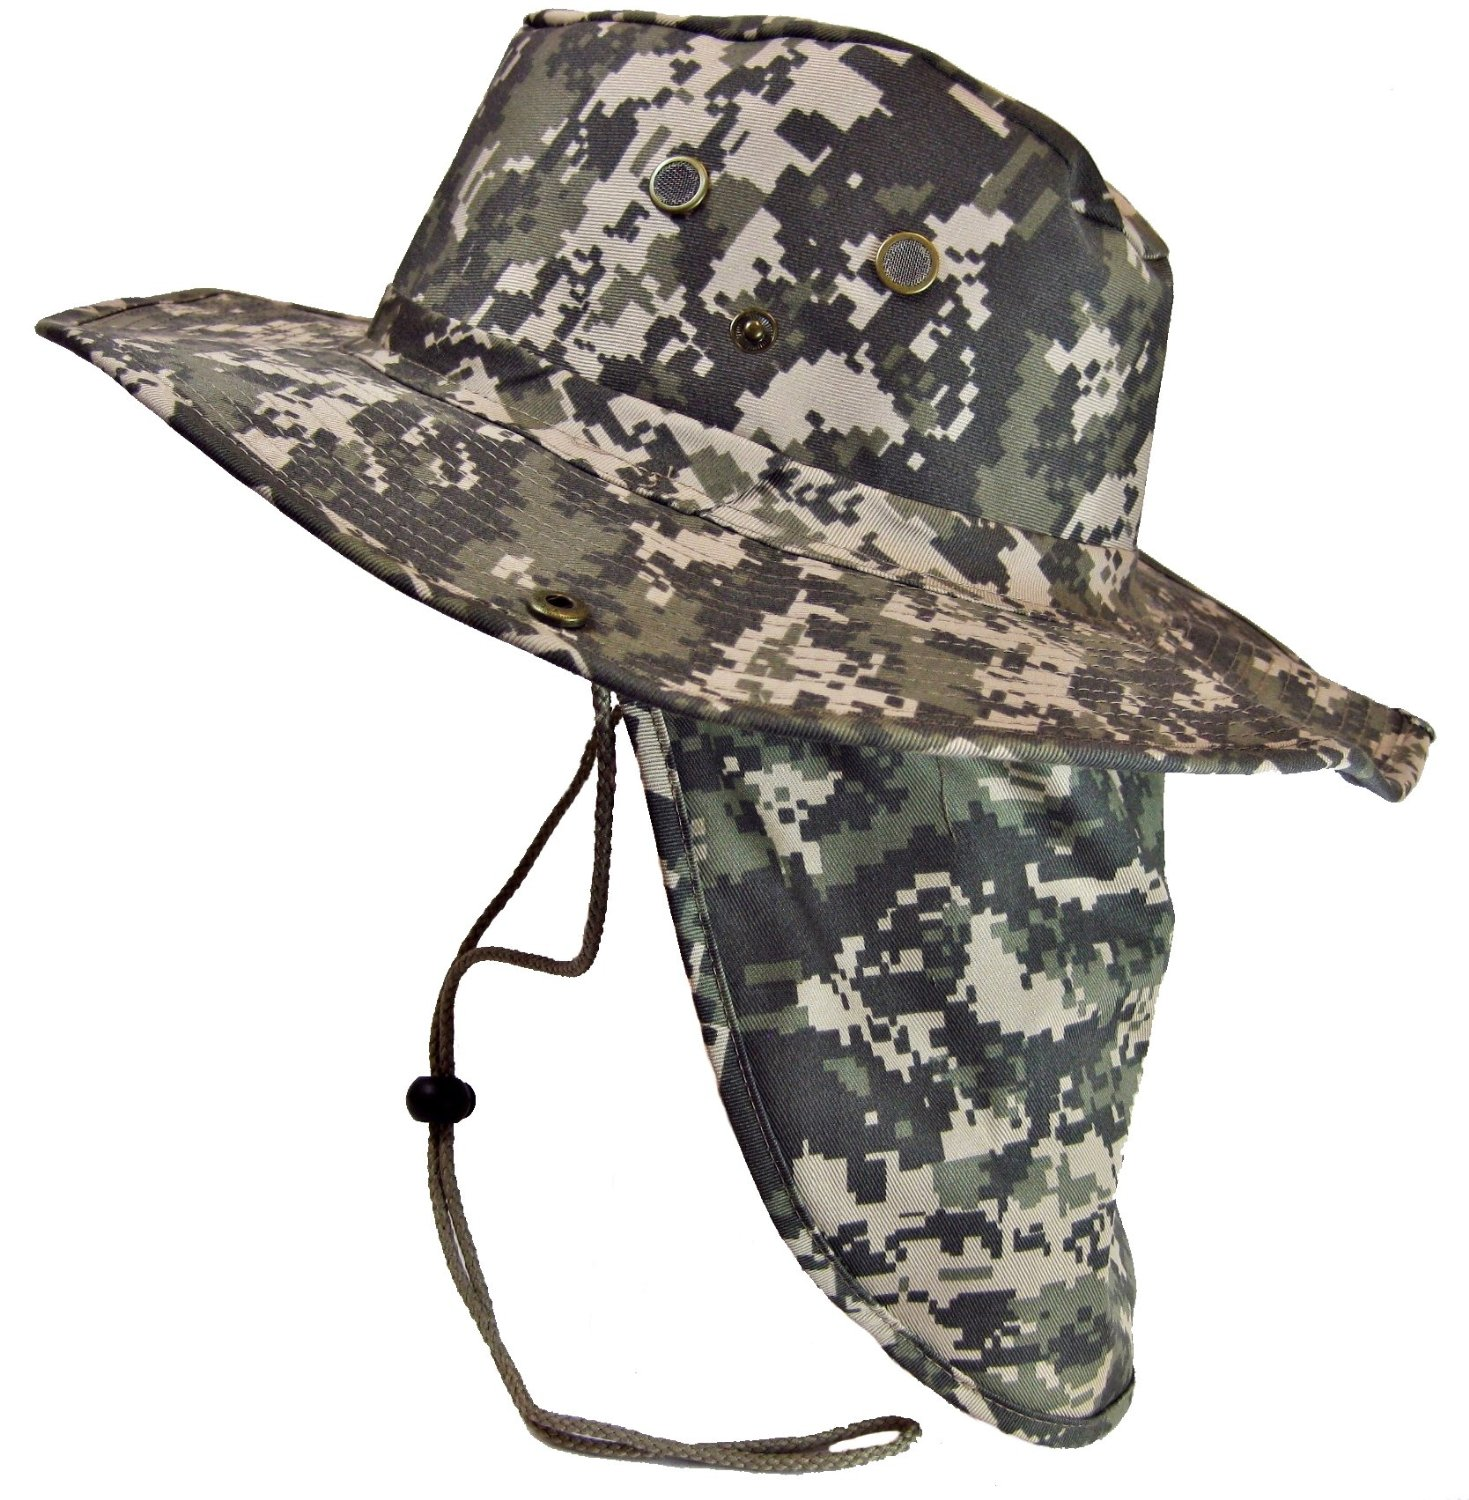 eae5baecec8 Military Camouflage Boonie Bush Safari Outdoor Fishing Hiking Hunting Boating  Snap Brim Hat Sun Cap with